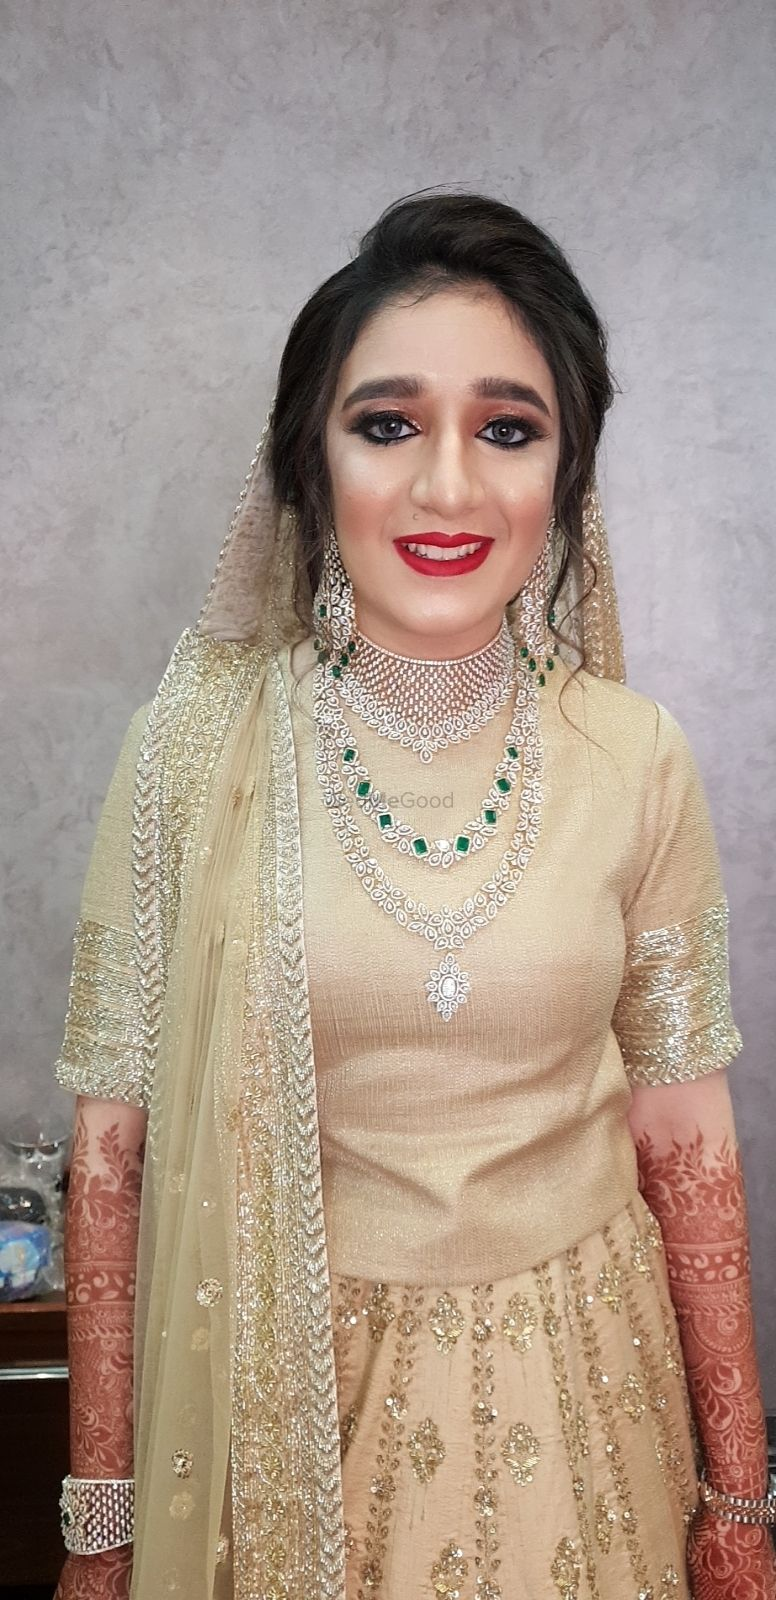 Photo From Bridal Look for my Muslim Bride Rehana Nathani - By Makeup by Dimplle S Bathija